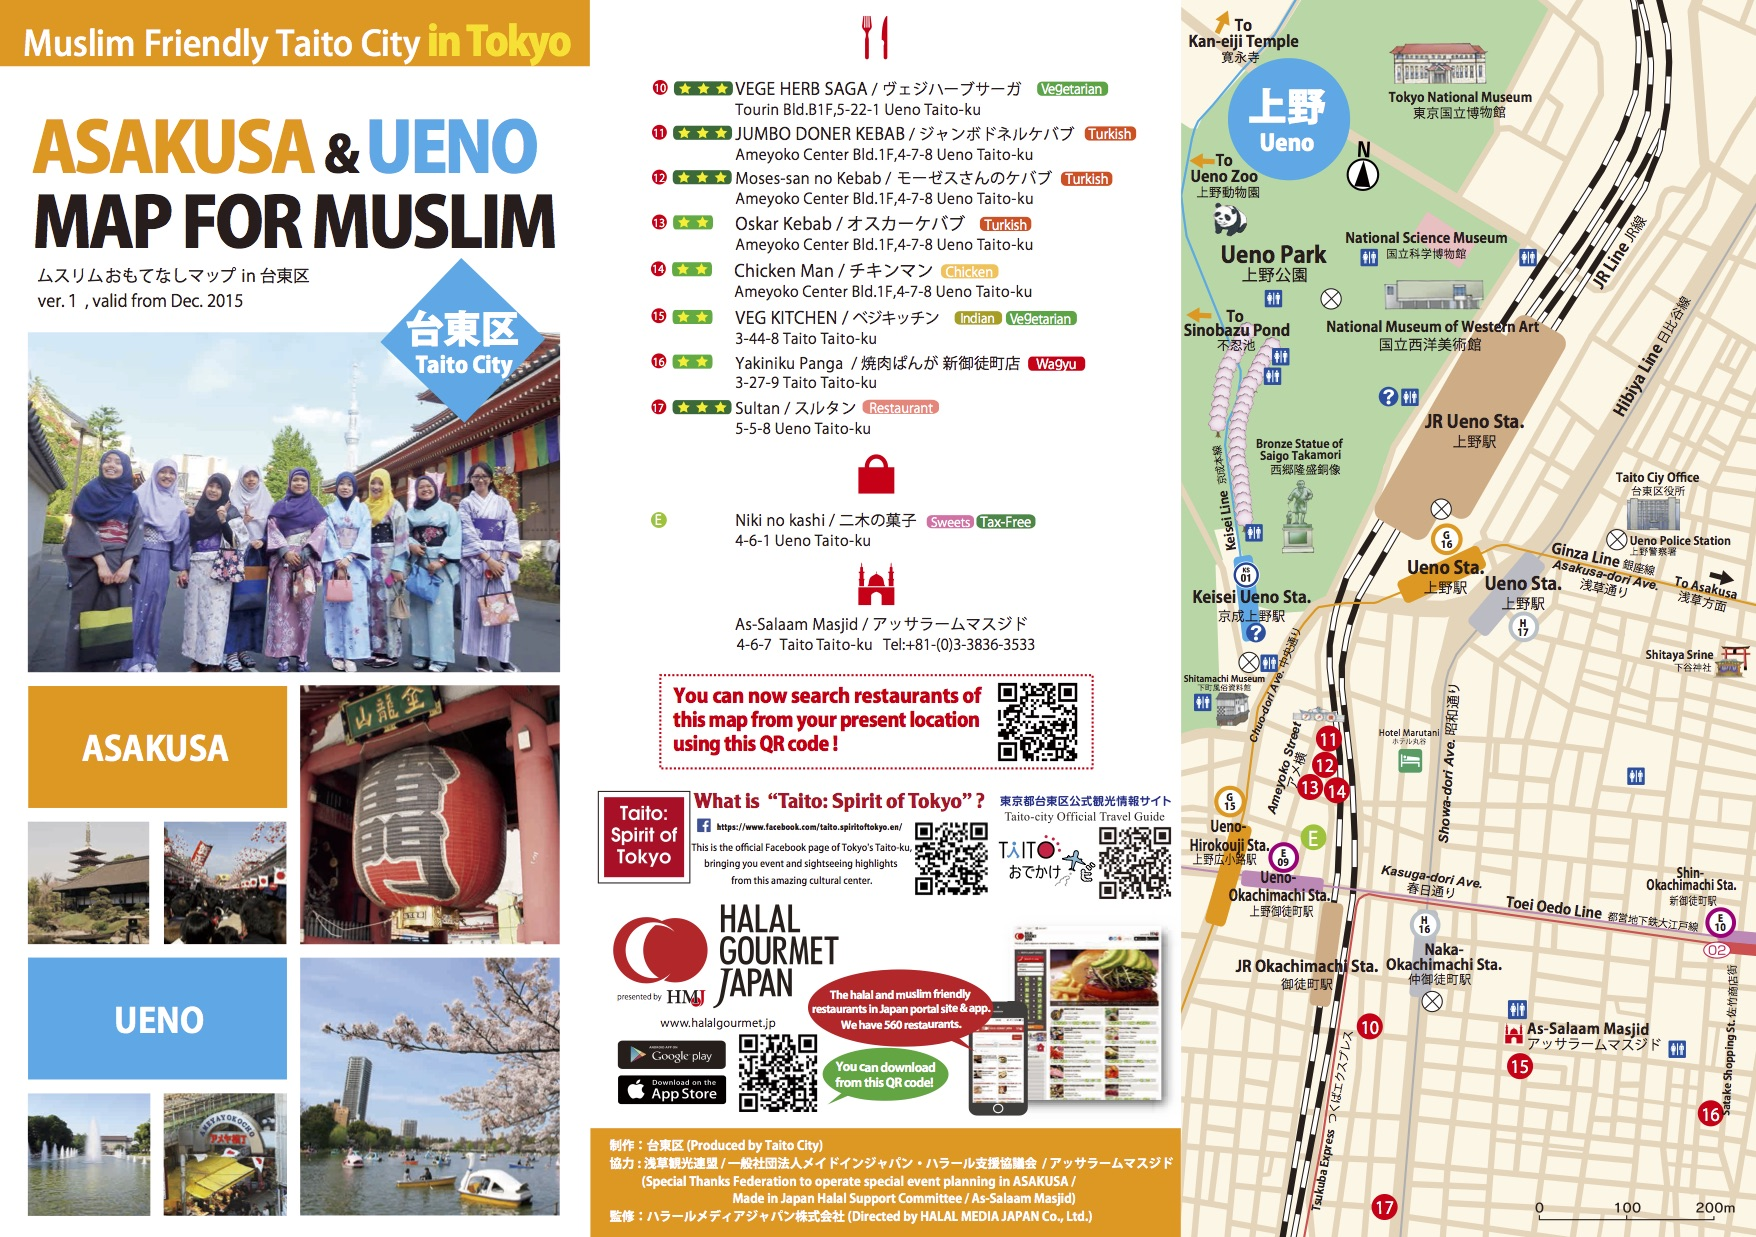 ASAKUSA UENO MAP FOR MUSLIM is released Halal Media Japan